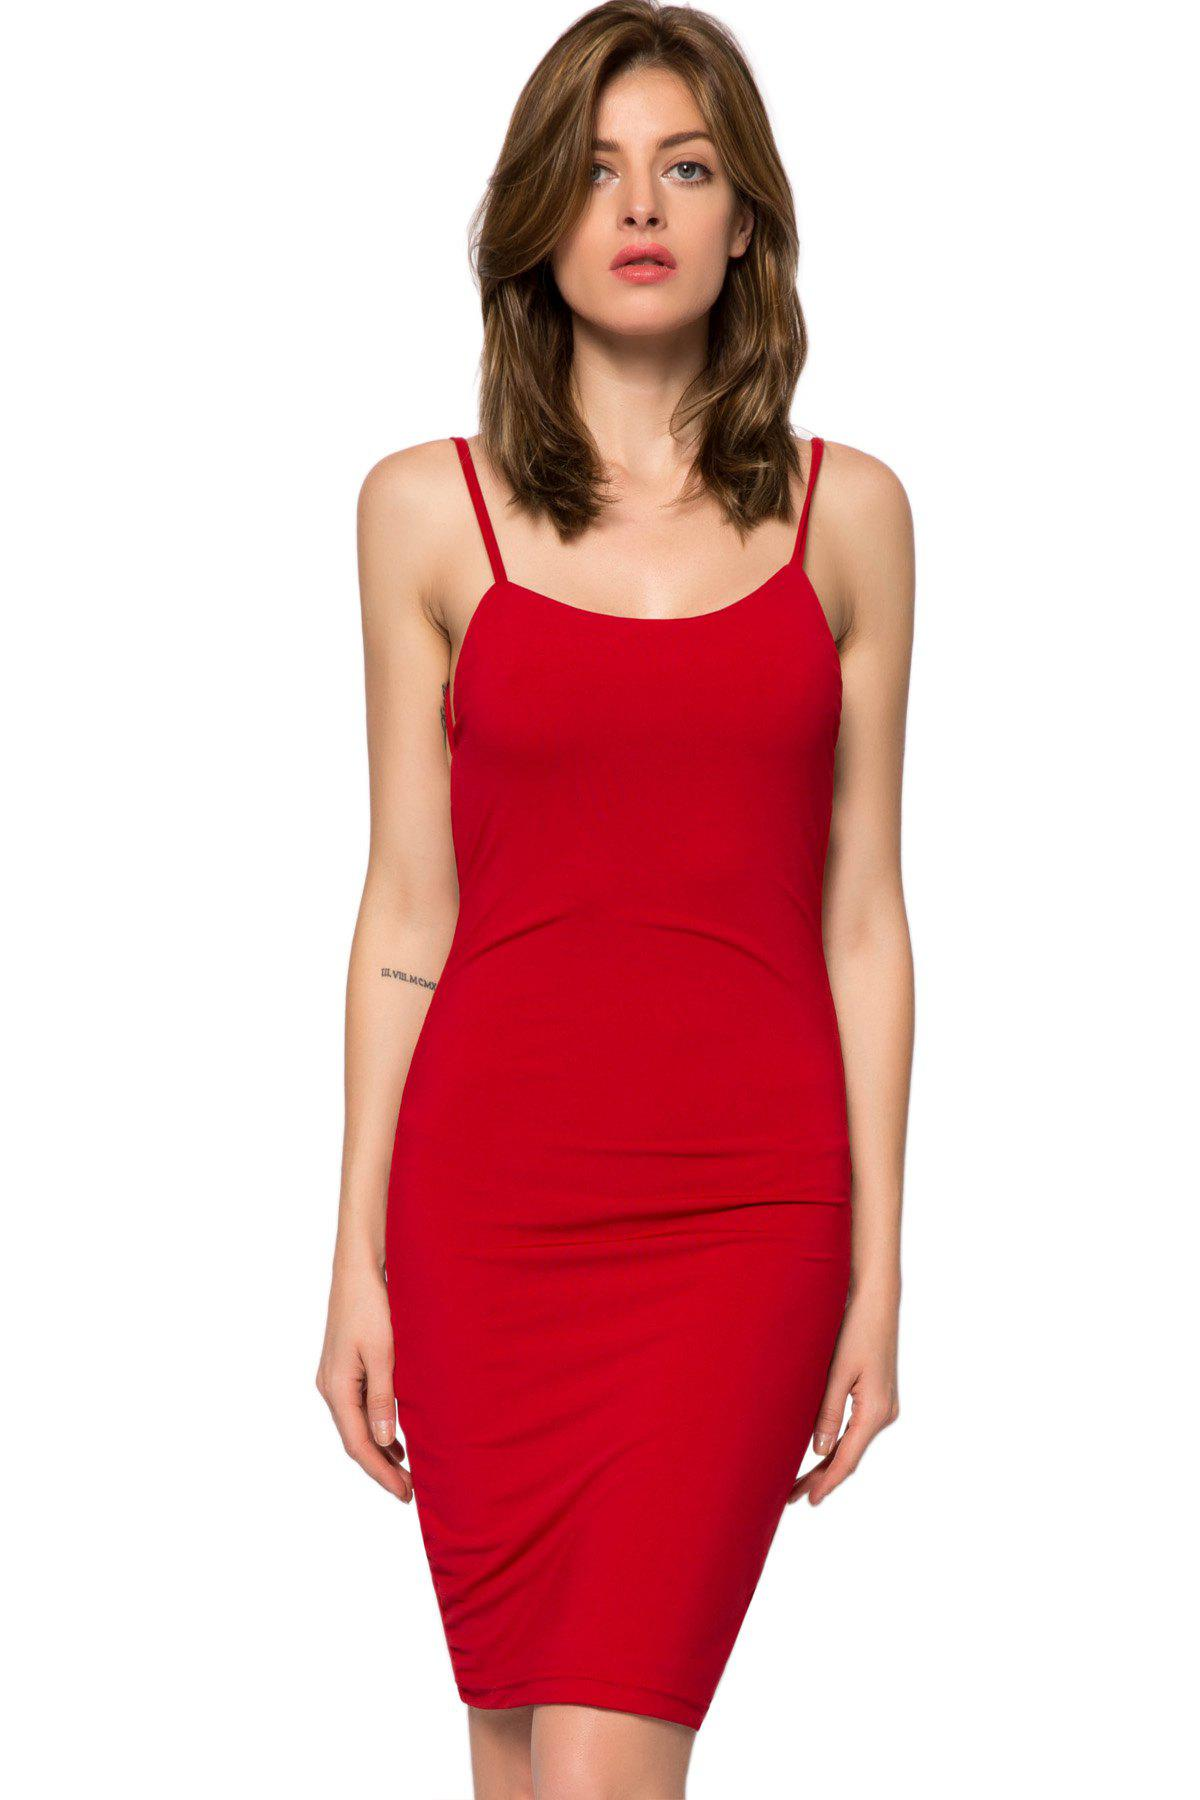 Sexy Style Spaghetti Straps Solid Color Backless Women's Bodycon Dress - RED 2XL